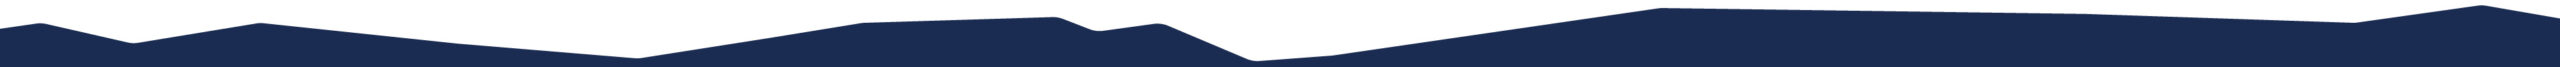 Website decoration that looks like torn paper. The color is navy.